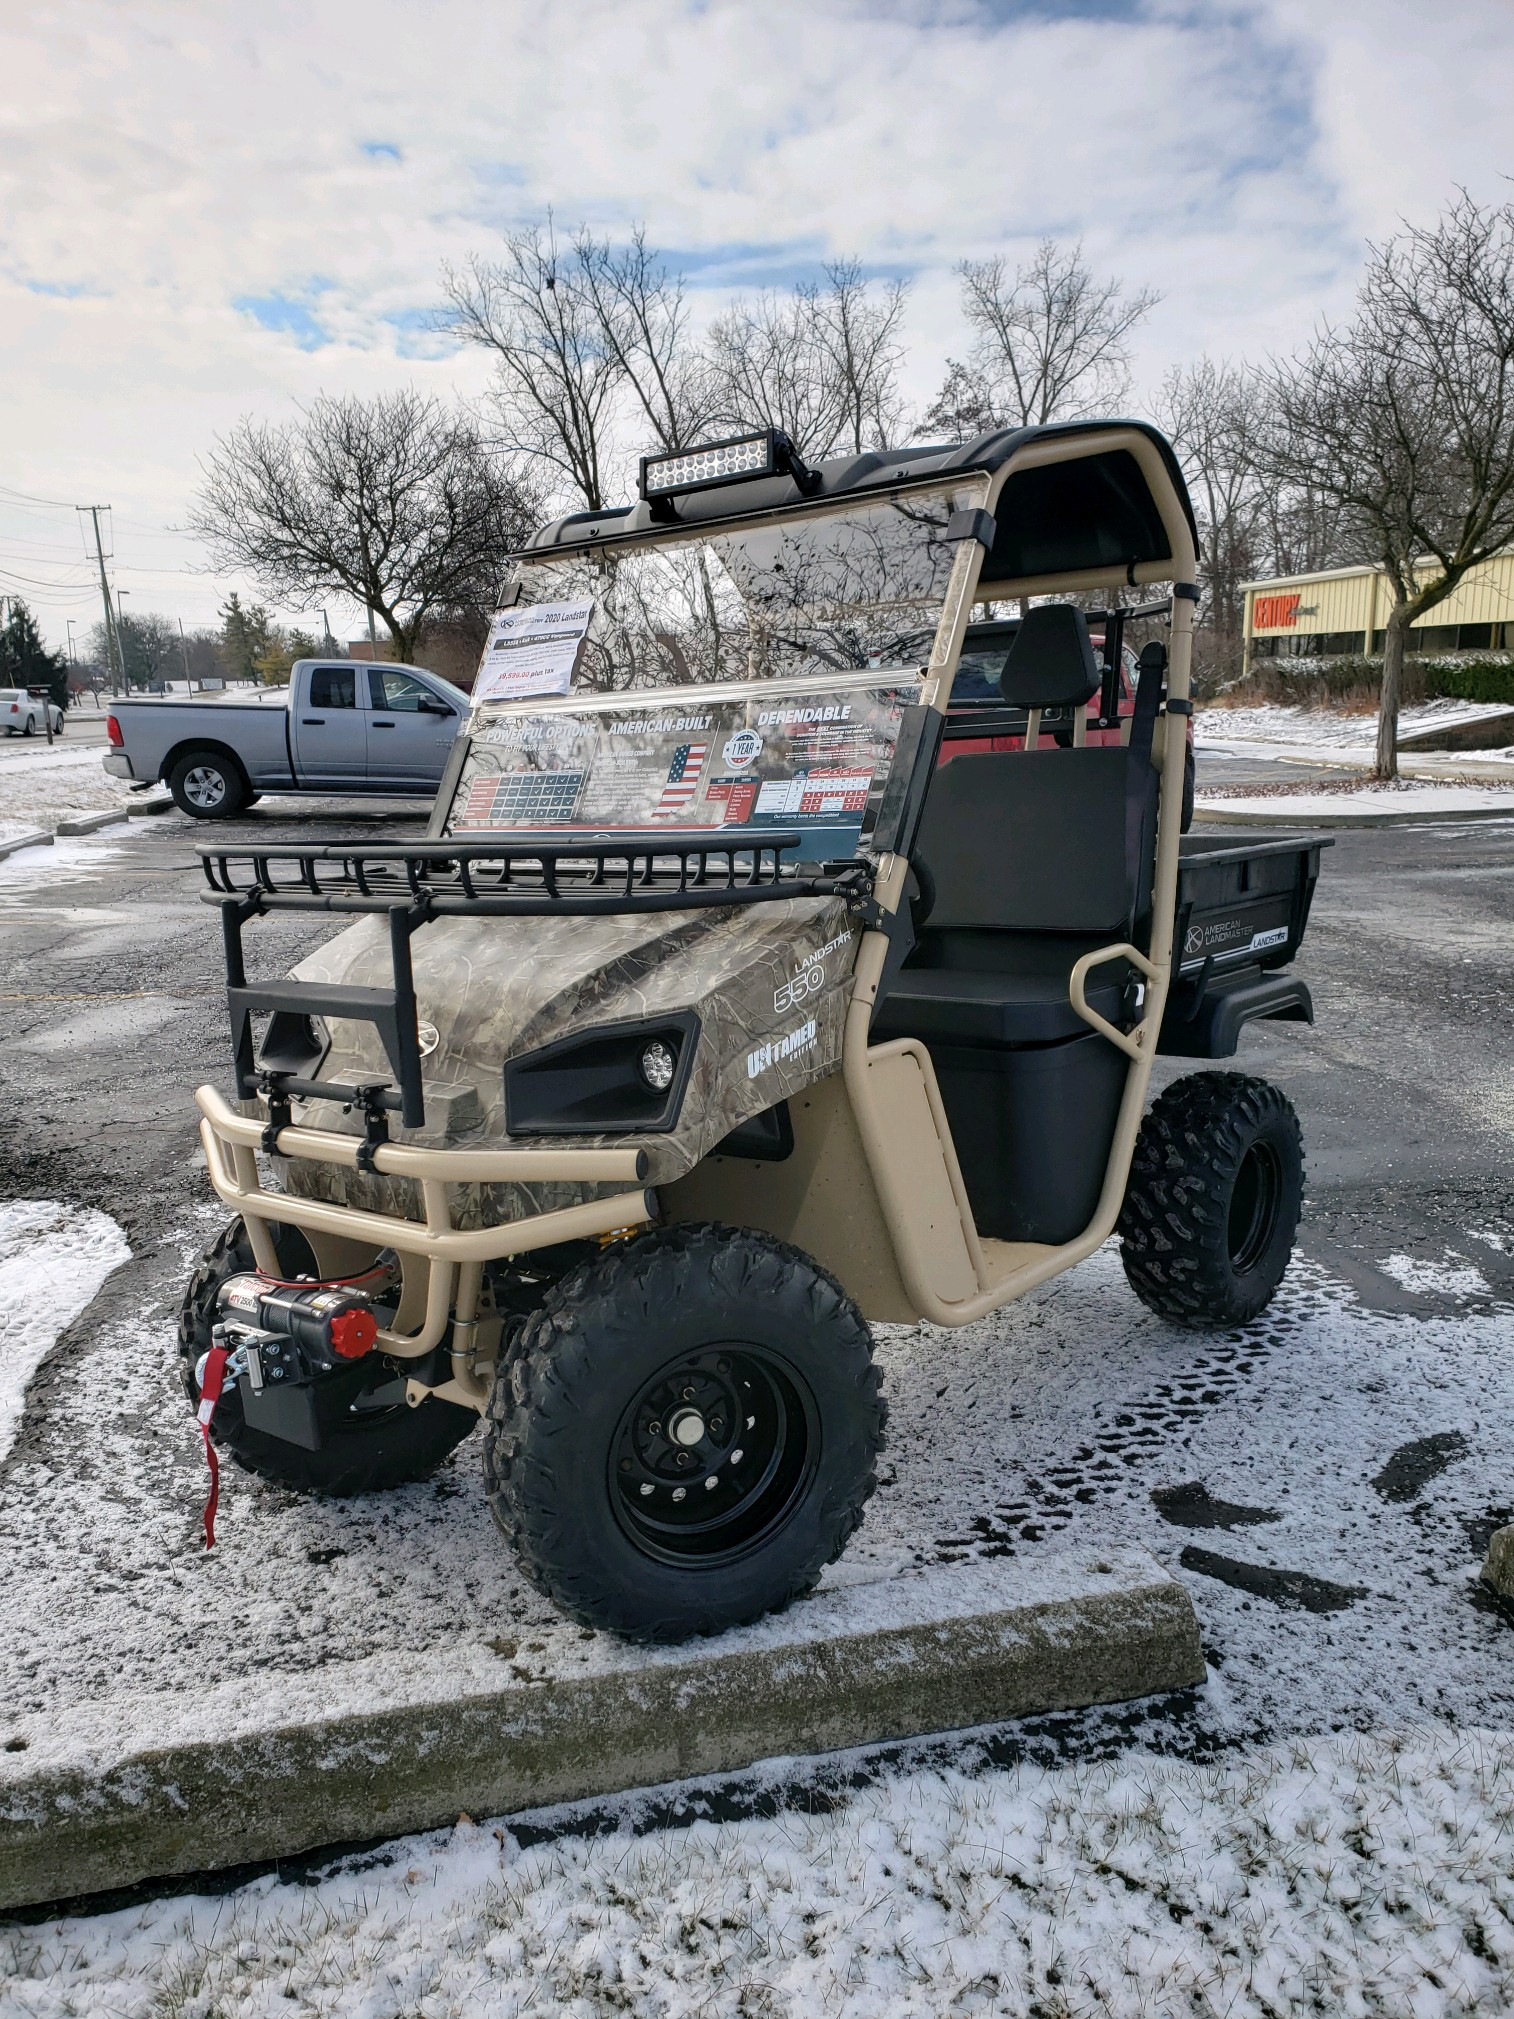 Featured Image for 2020 American Landmaster 550 Untamed 4WD 2 Passenger Gas